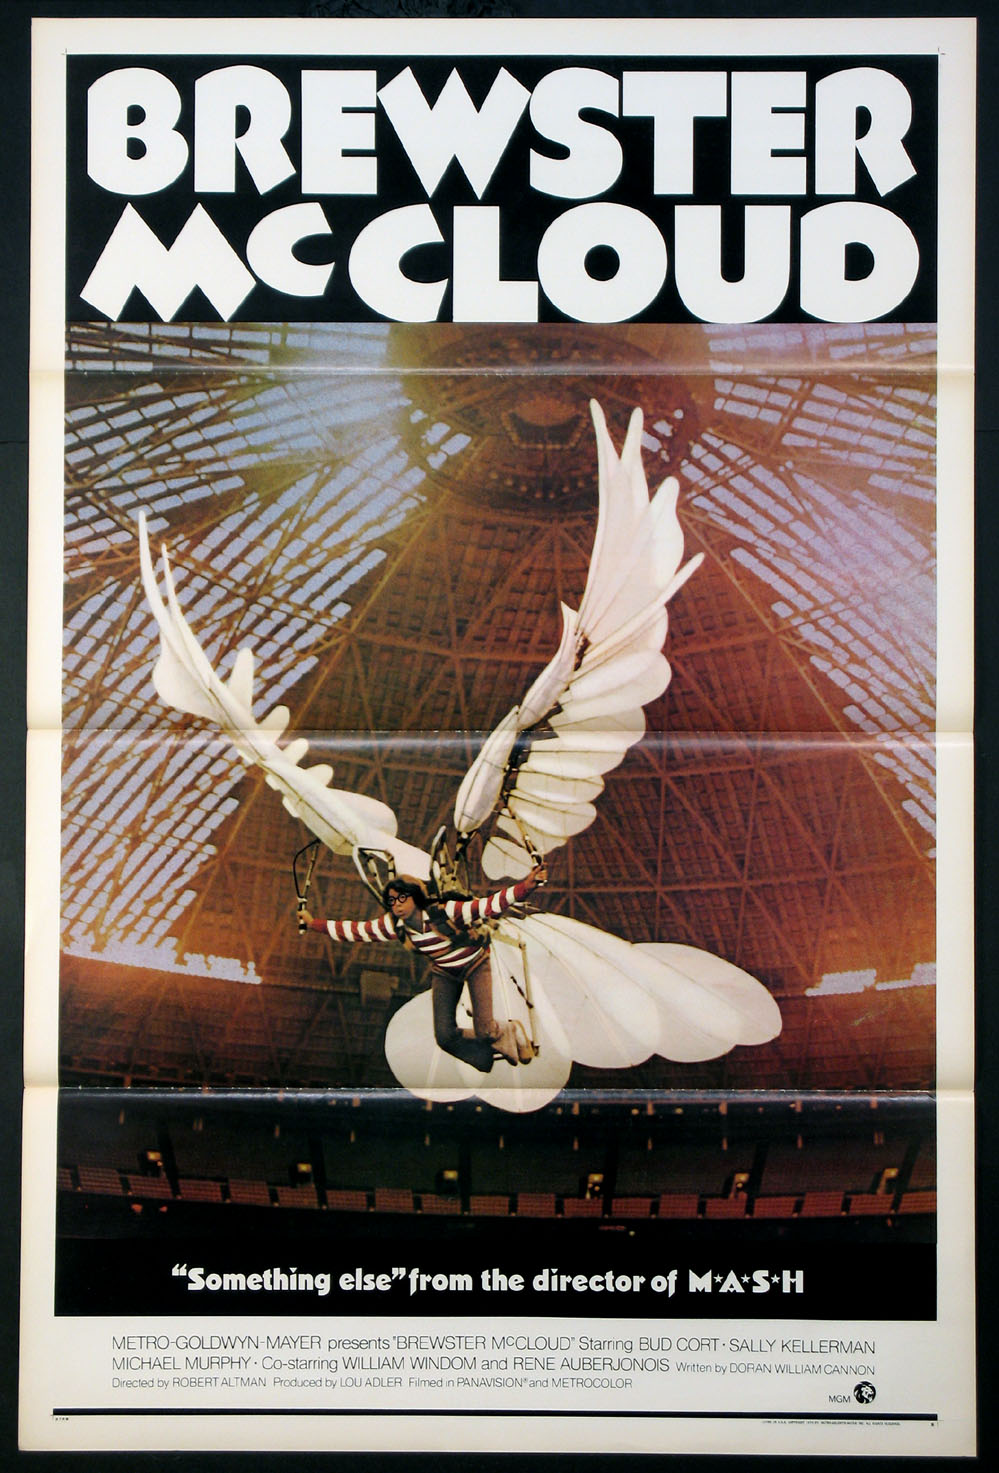 BREWSTER McCLOUD @ FilmPosters.com